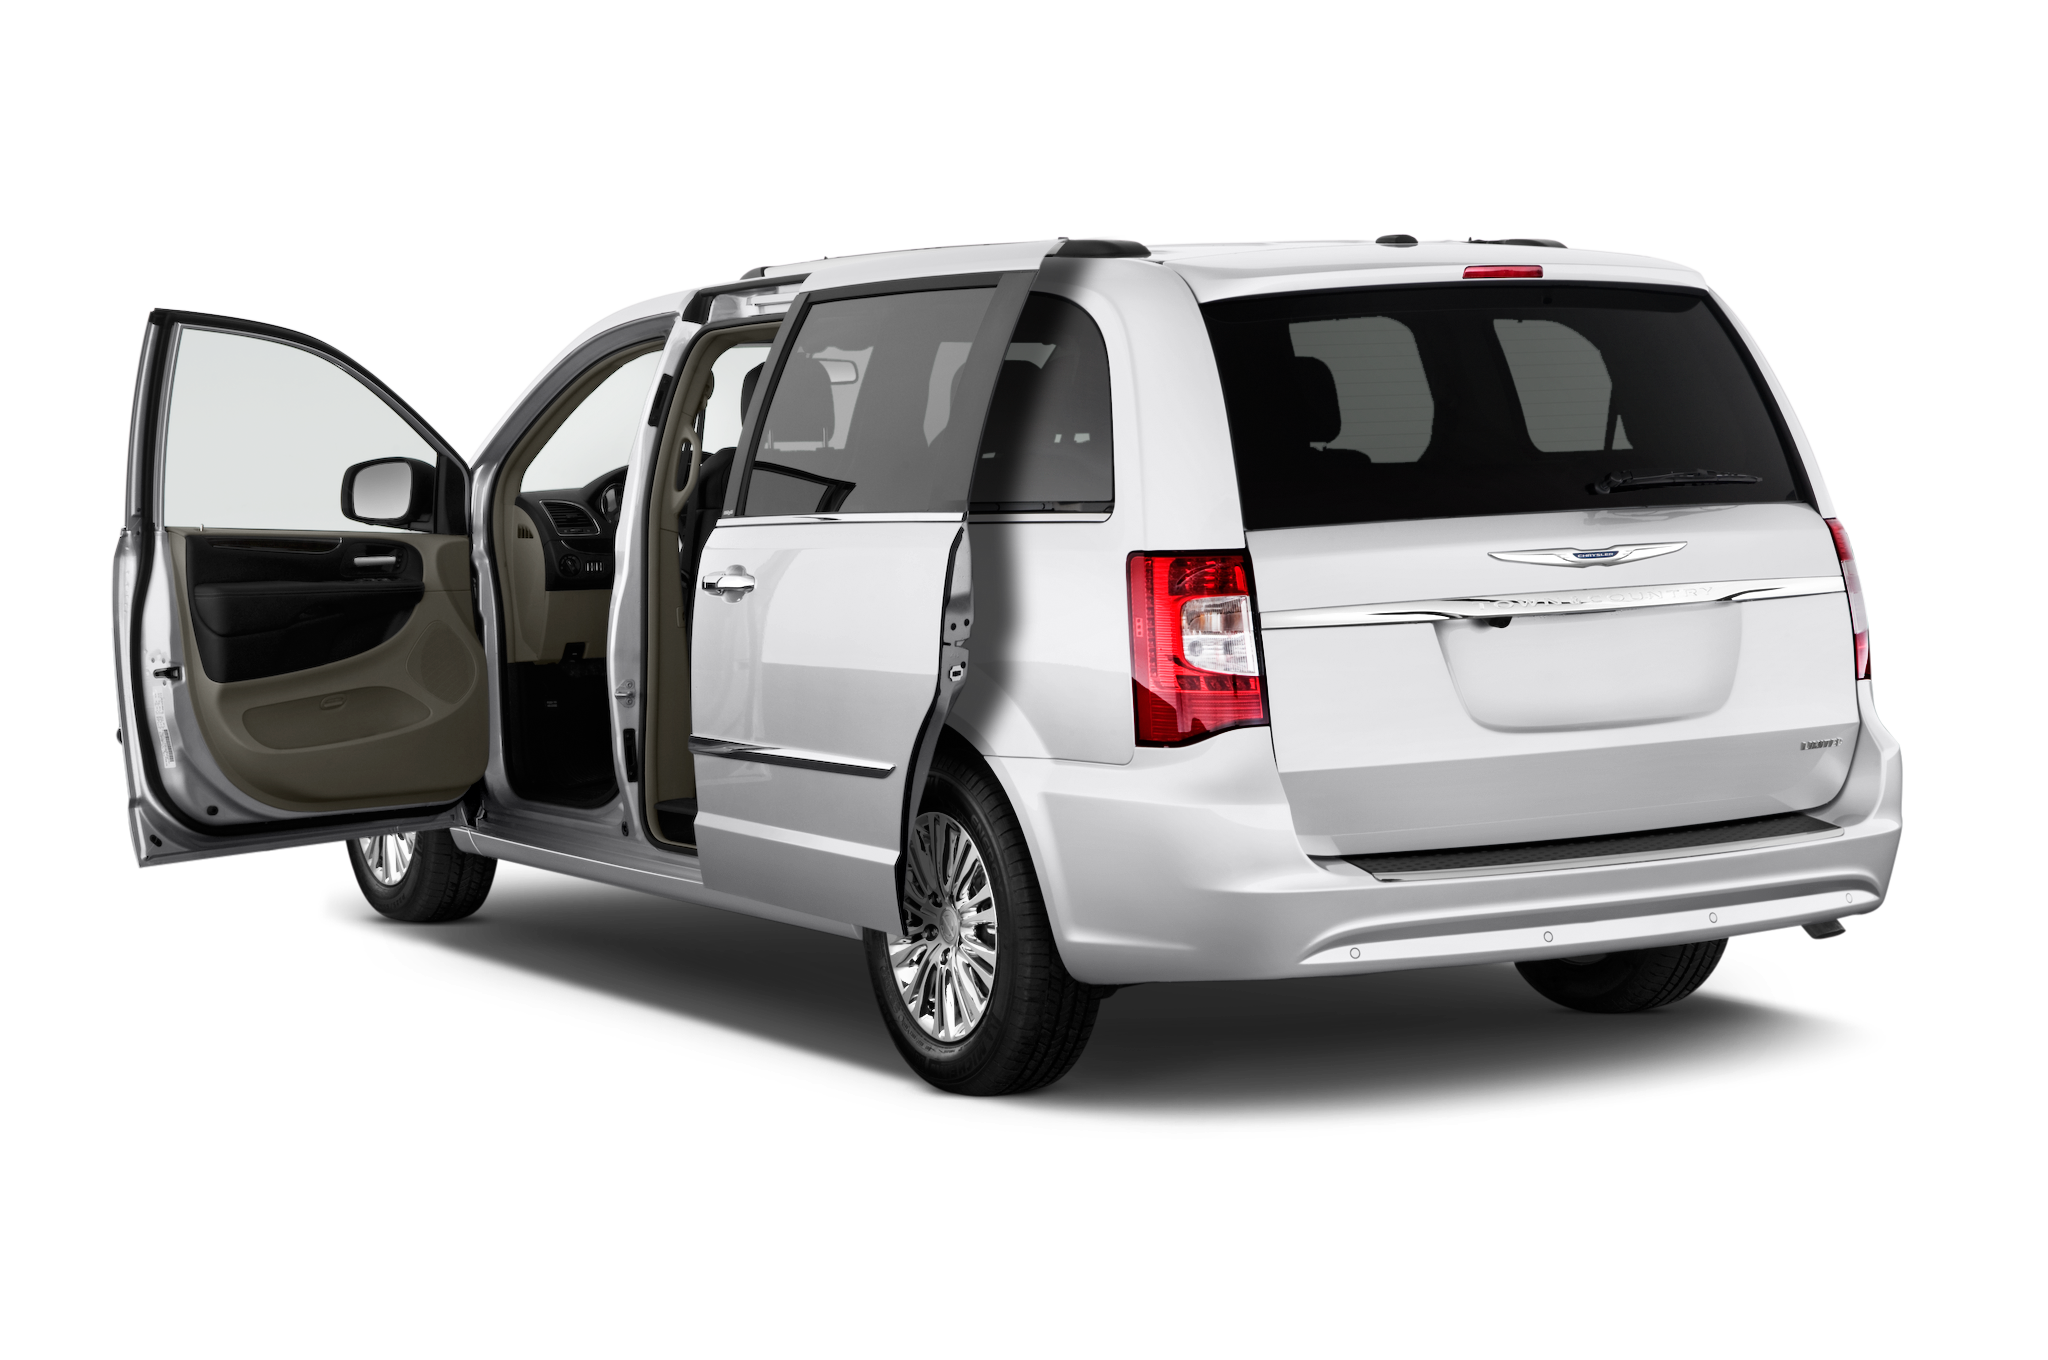 2015 chrysler town country lx model to cost less than 30 000. Black Bedroom Furniture Sets. Home Design Ideas